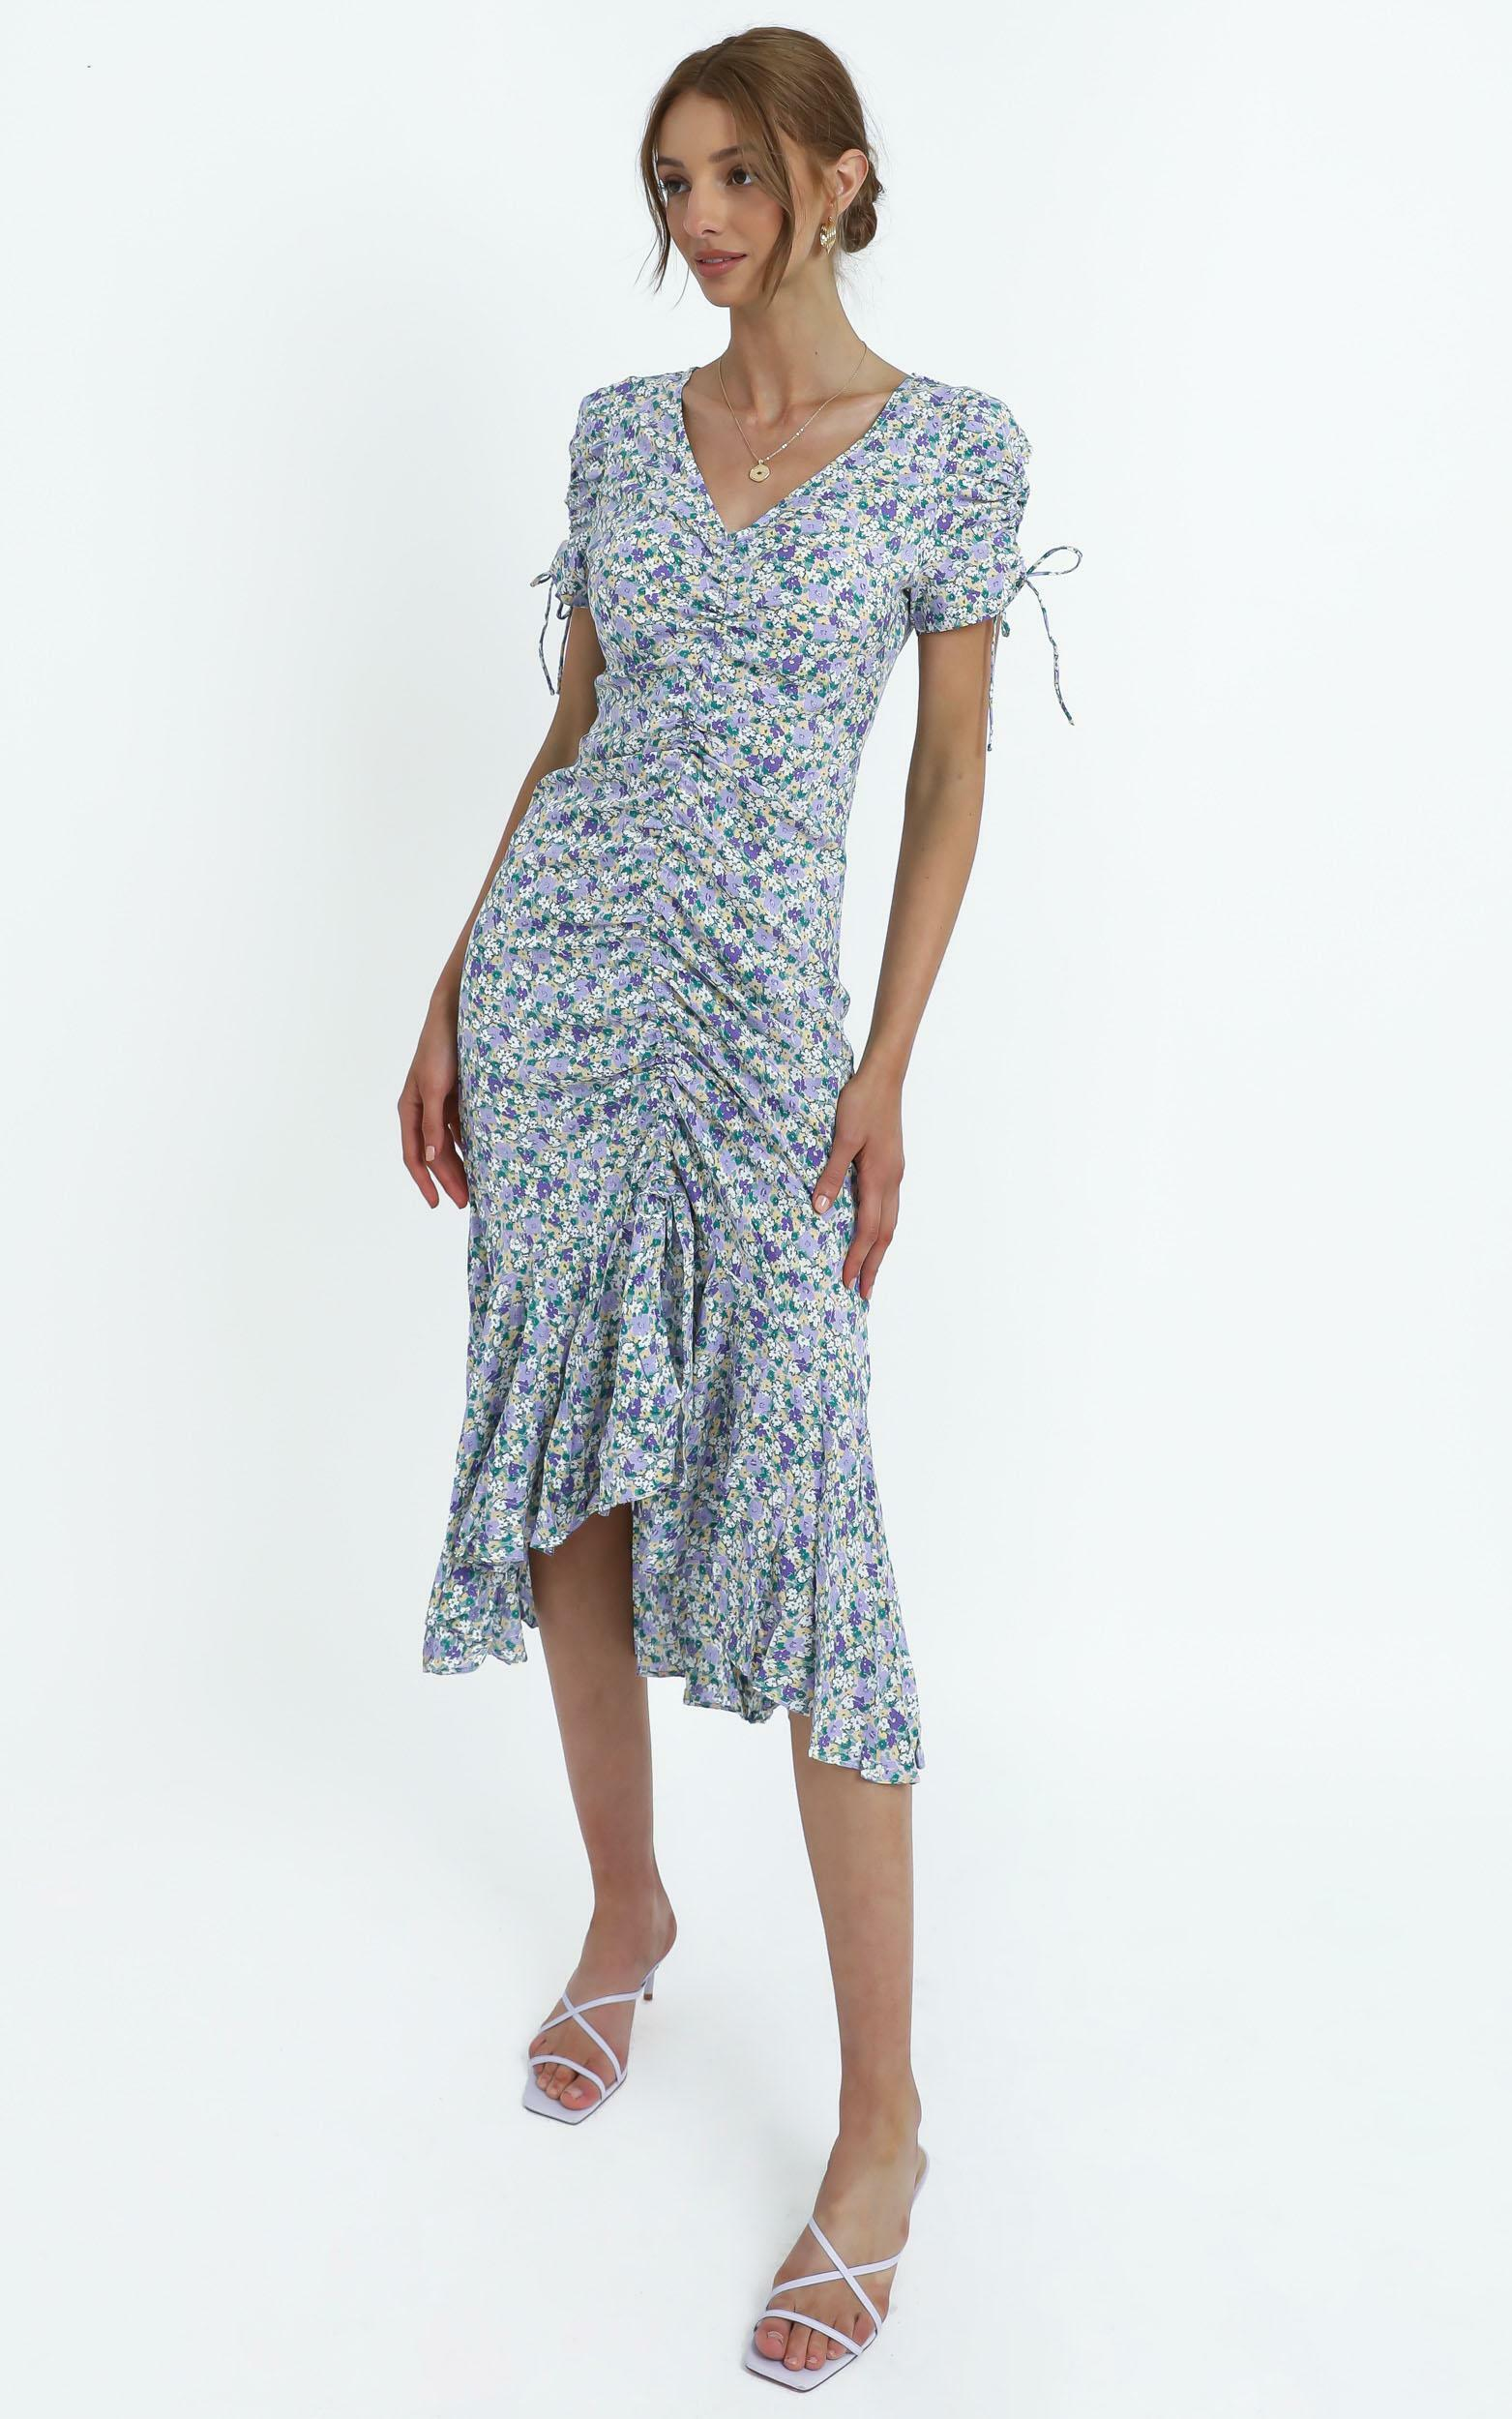 Vienna Dress in Blue Floral - 14 (XL), Blue, hi-res image number null